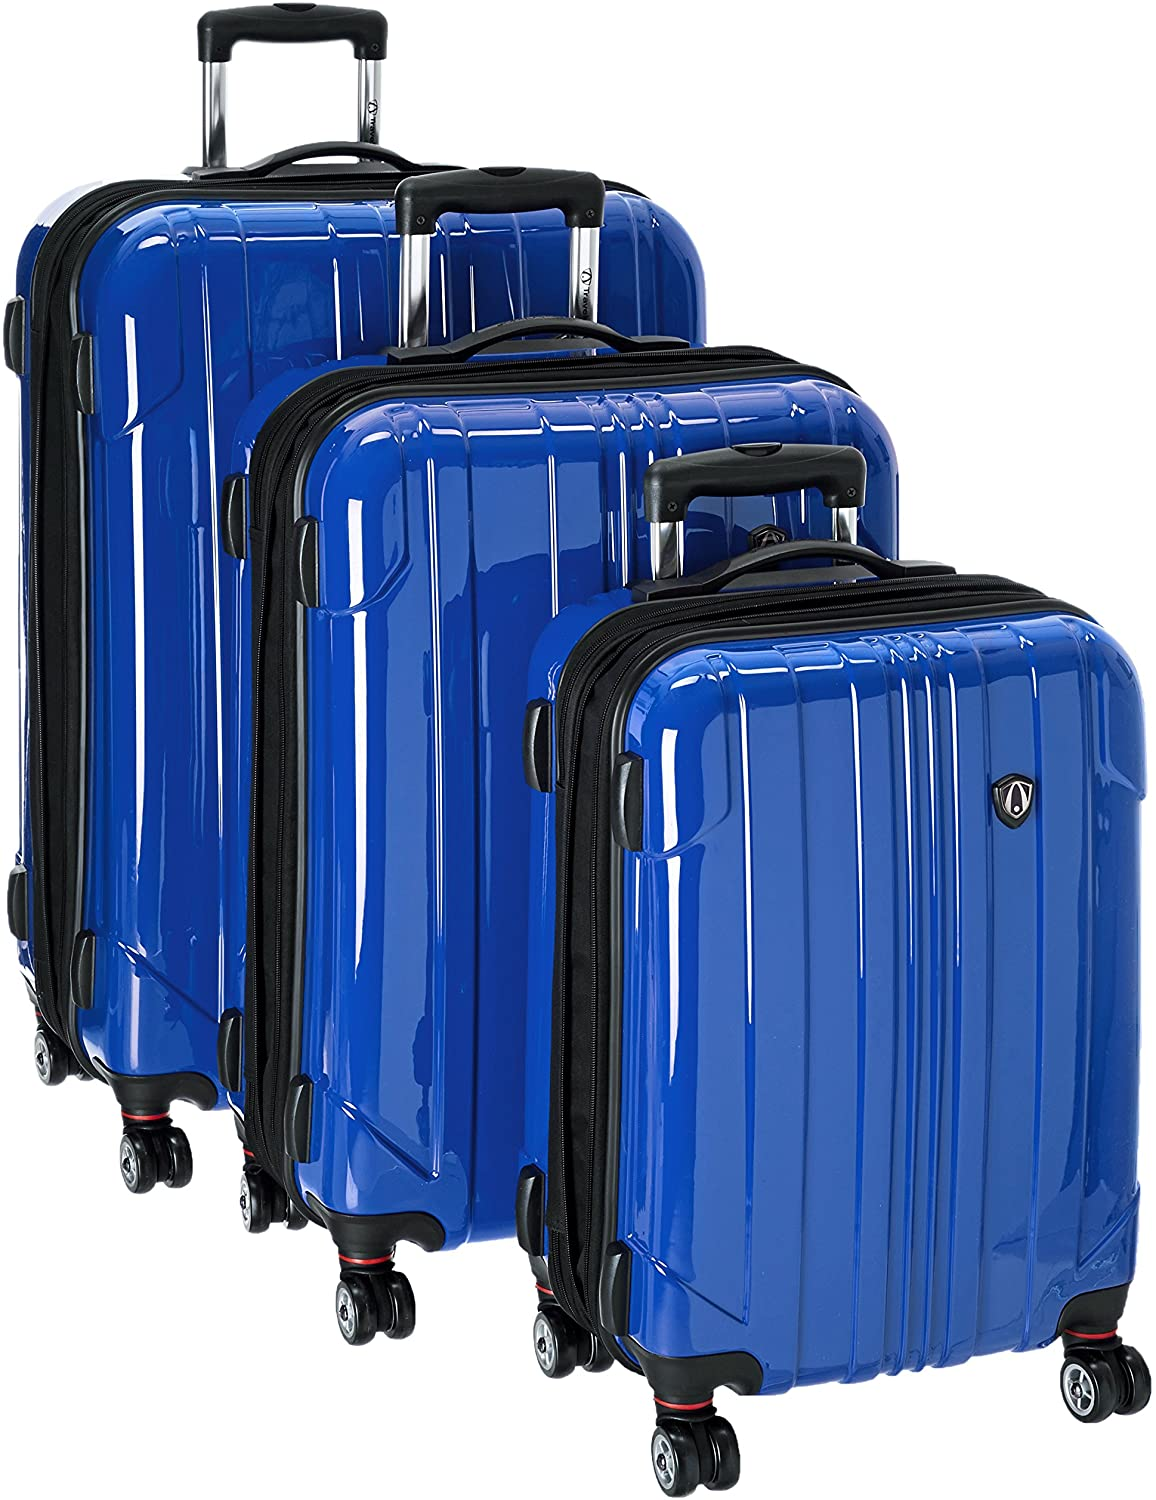 Traveler's Choice Sedona 100% Pure Polycarbonate Expandable Spinner Luggage, Blue, 3-Piece Set